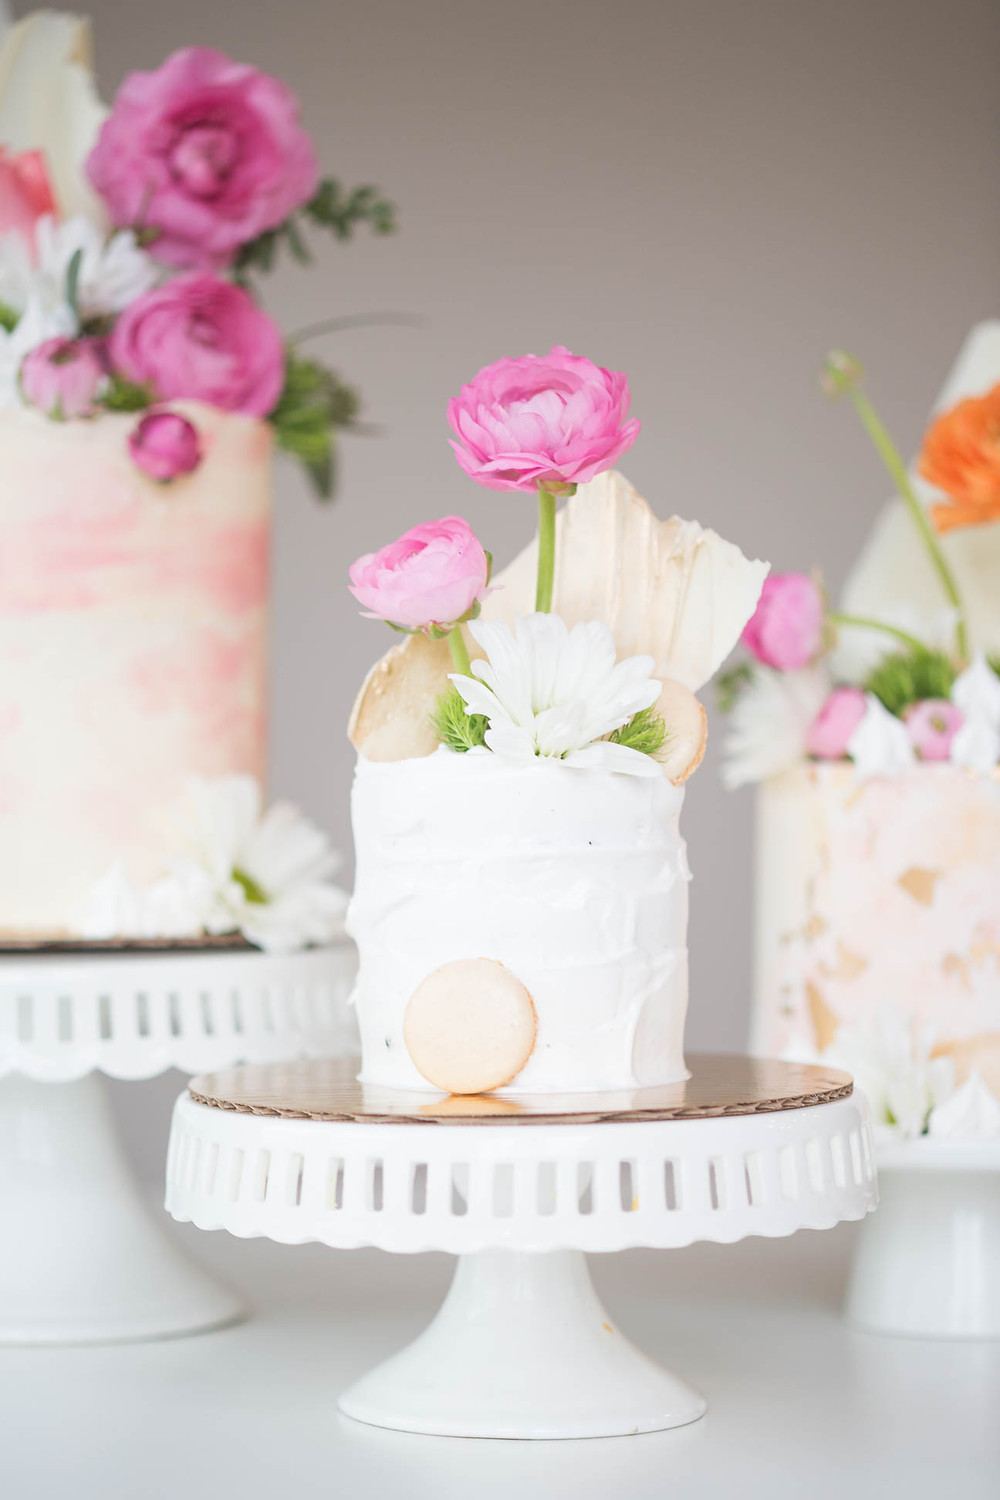 small wedding cake trip decorated with macaroons, florals, and white and pink icing